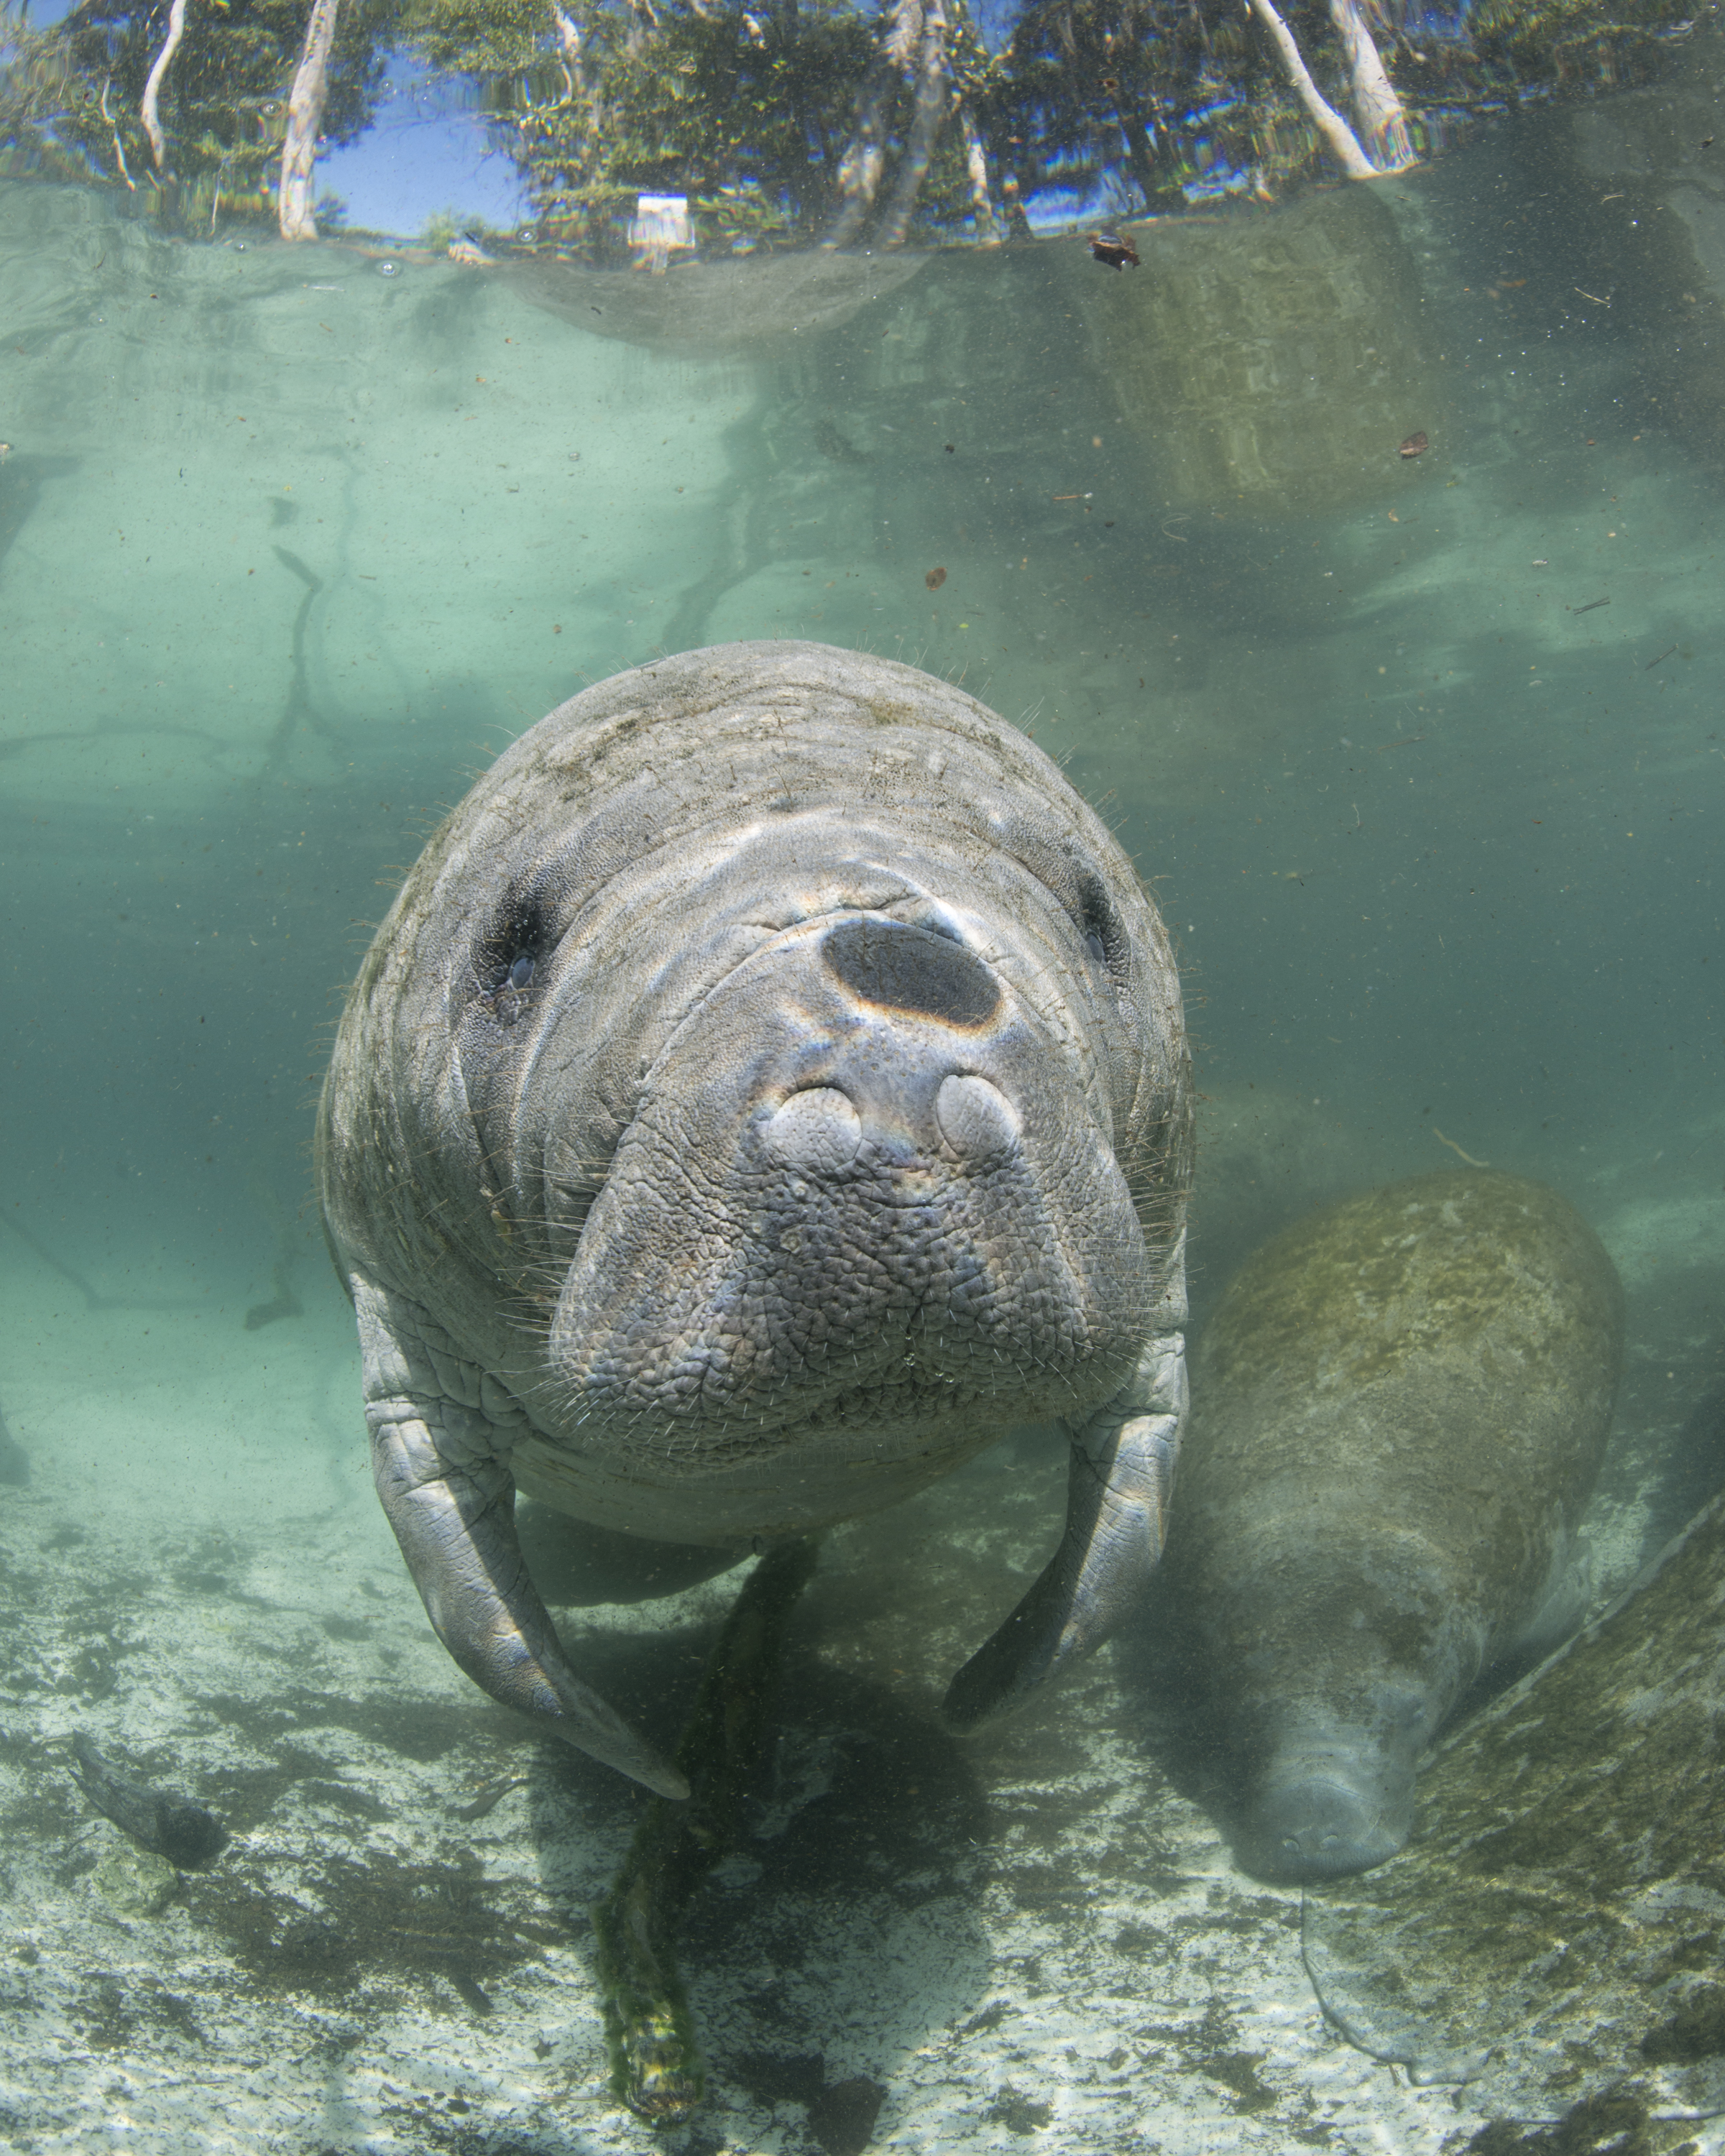 Manatee in Crystal River redit: ellen cuylaerts / coral reef image bank